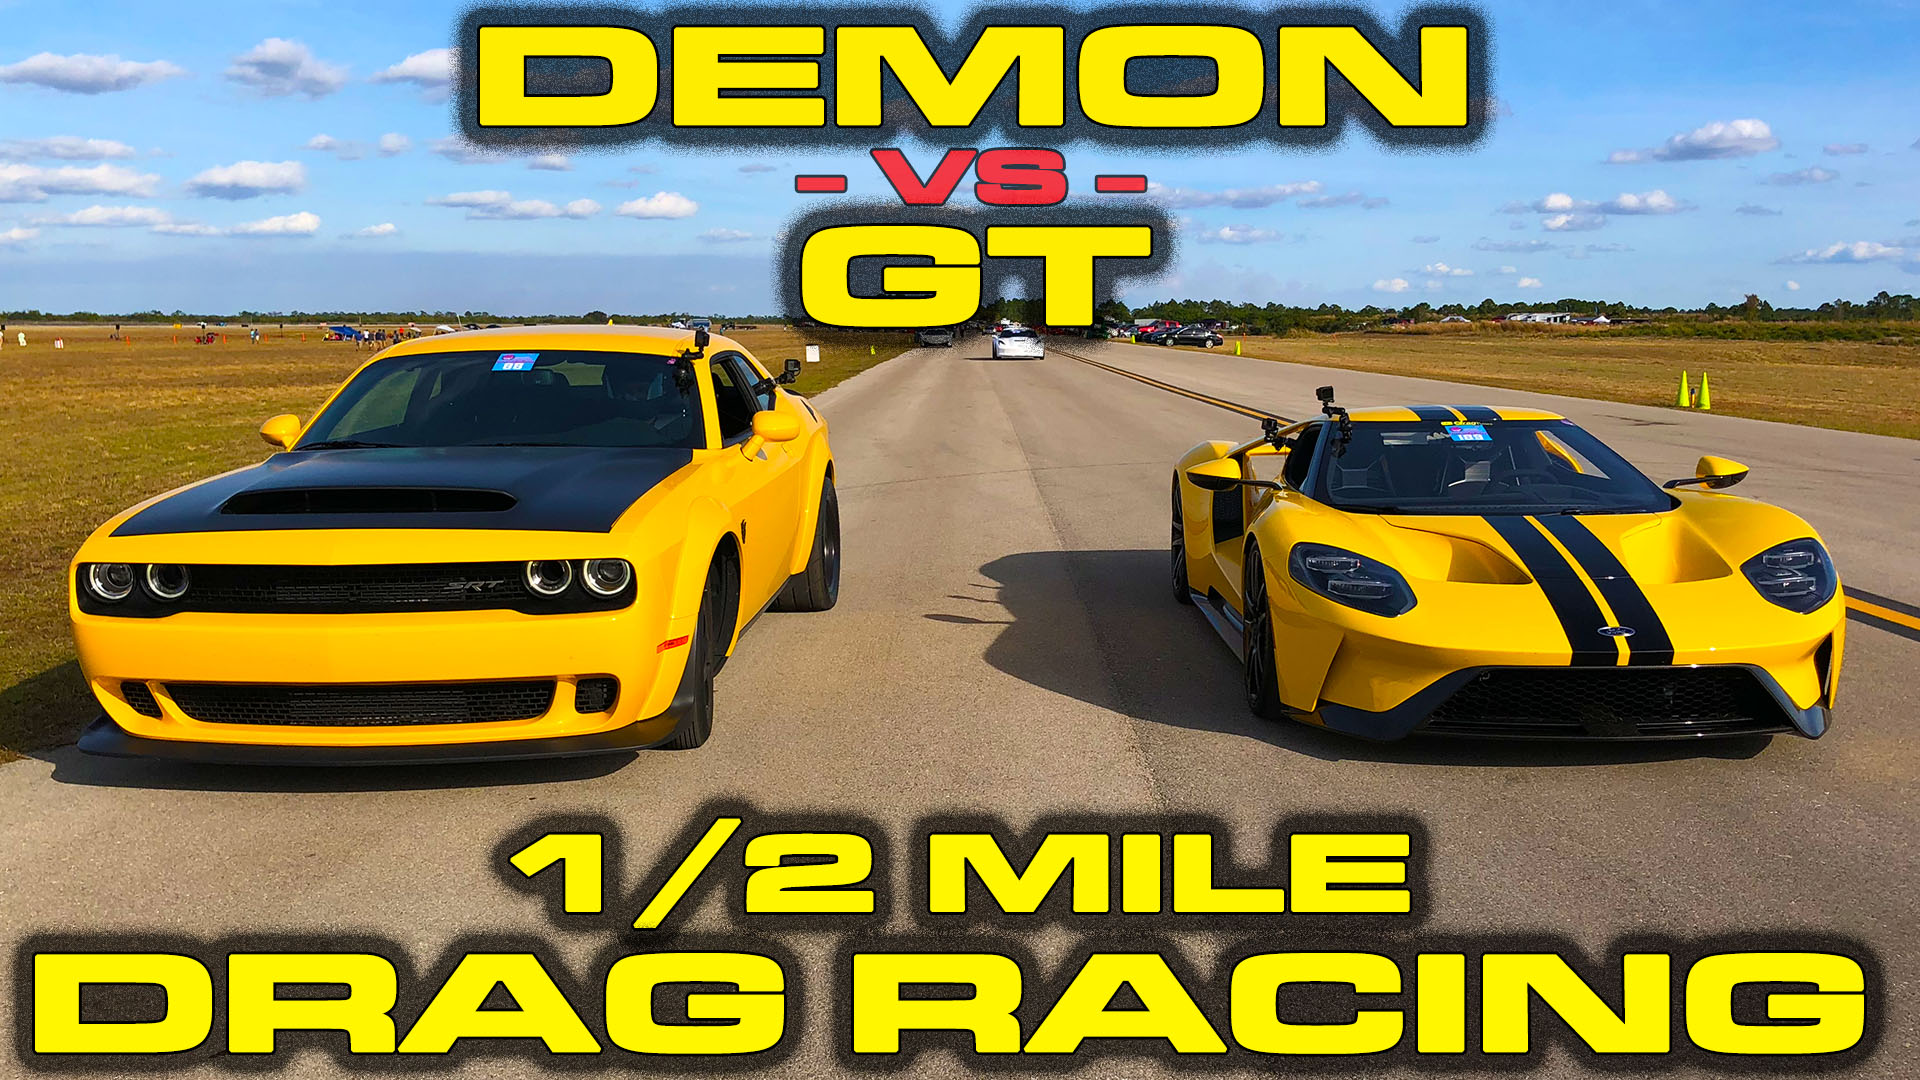 Ford GT vs Dodge Demon Drag Racing 1/2 Mile